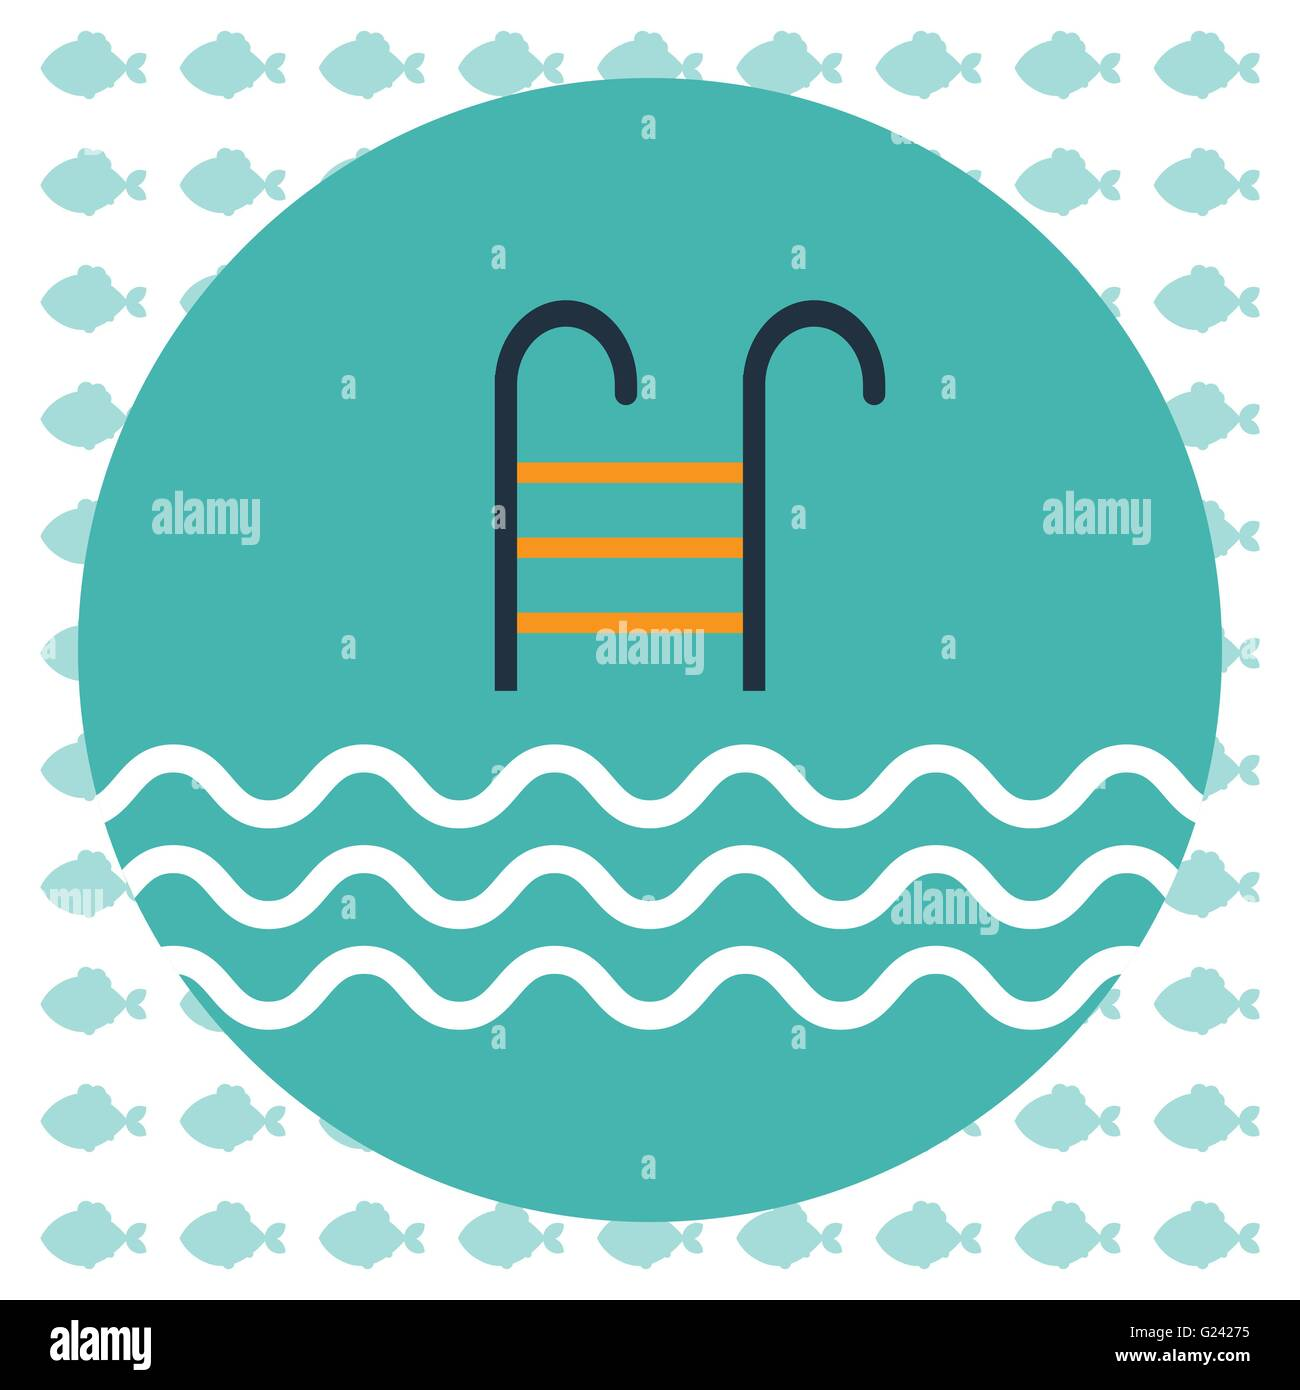 Abstract illustration with a pool ladder and water with waves in a round green frame, over an white background with - Stock Vector